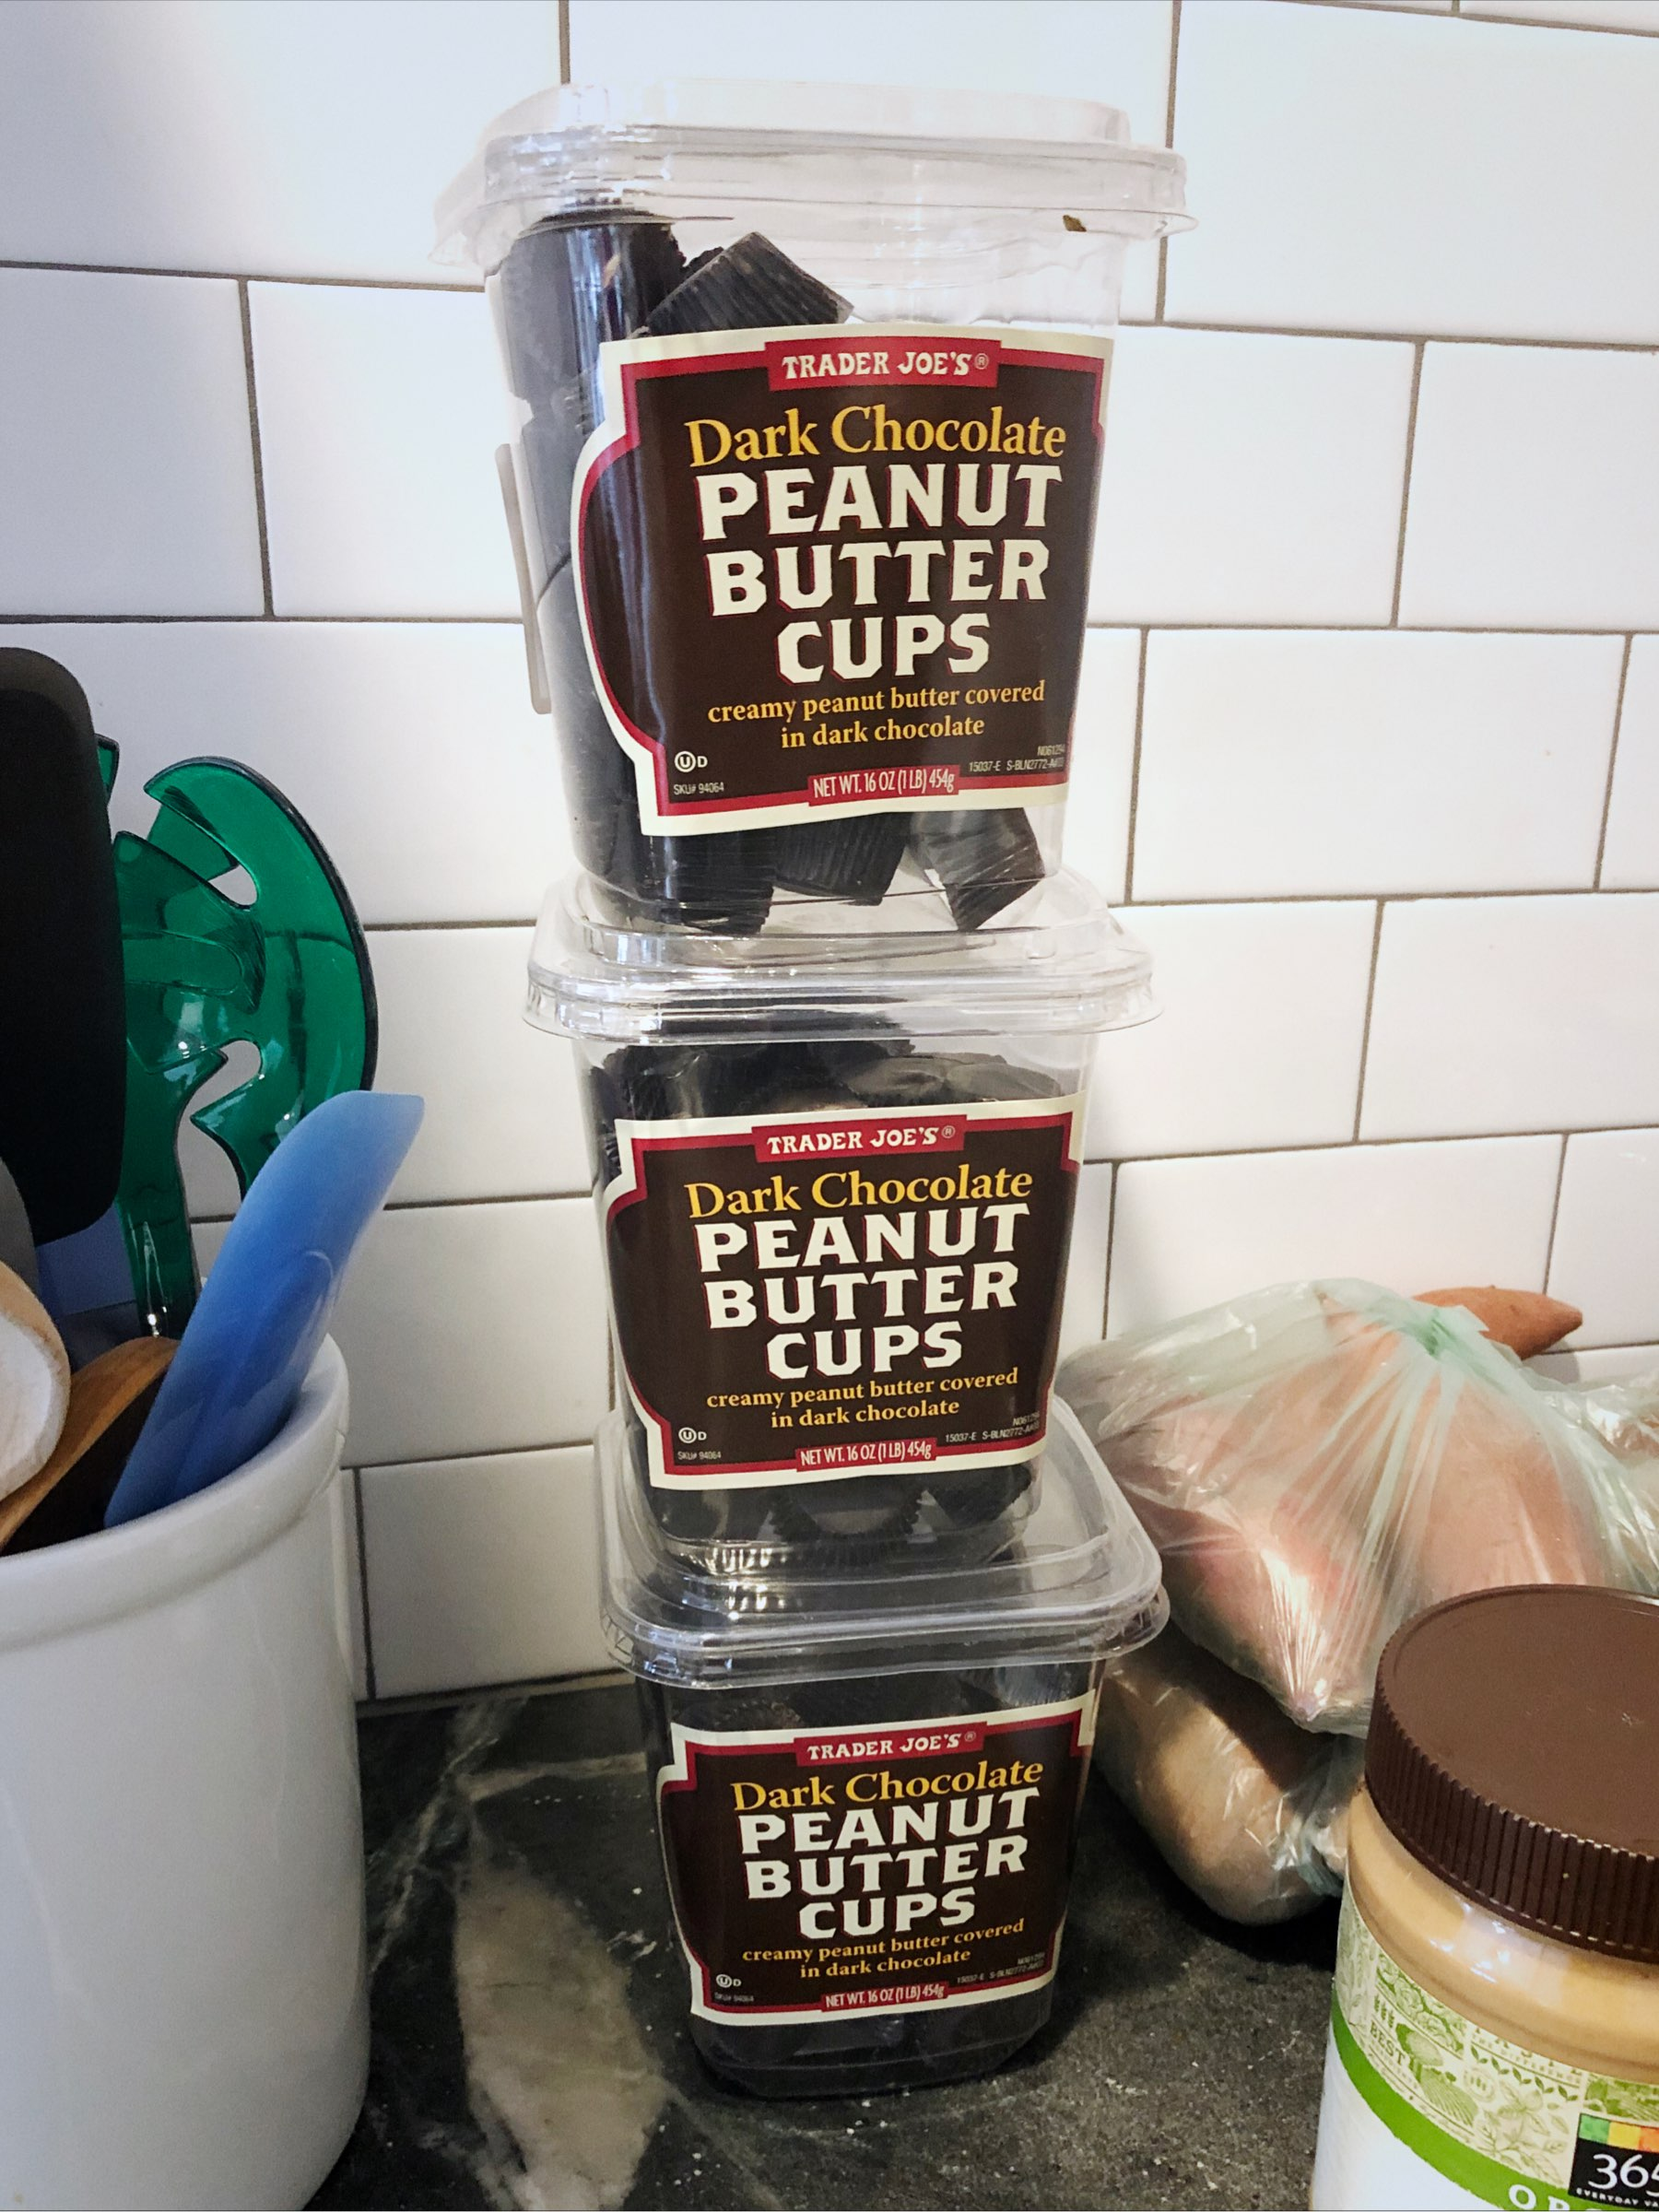 Trader Joe's Peanut Butter Cups